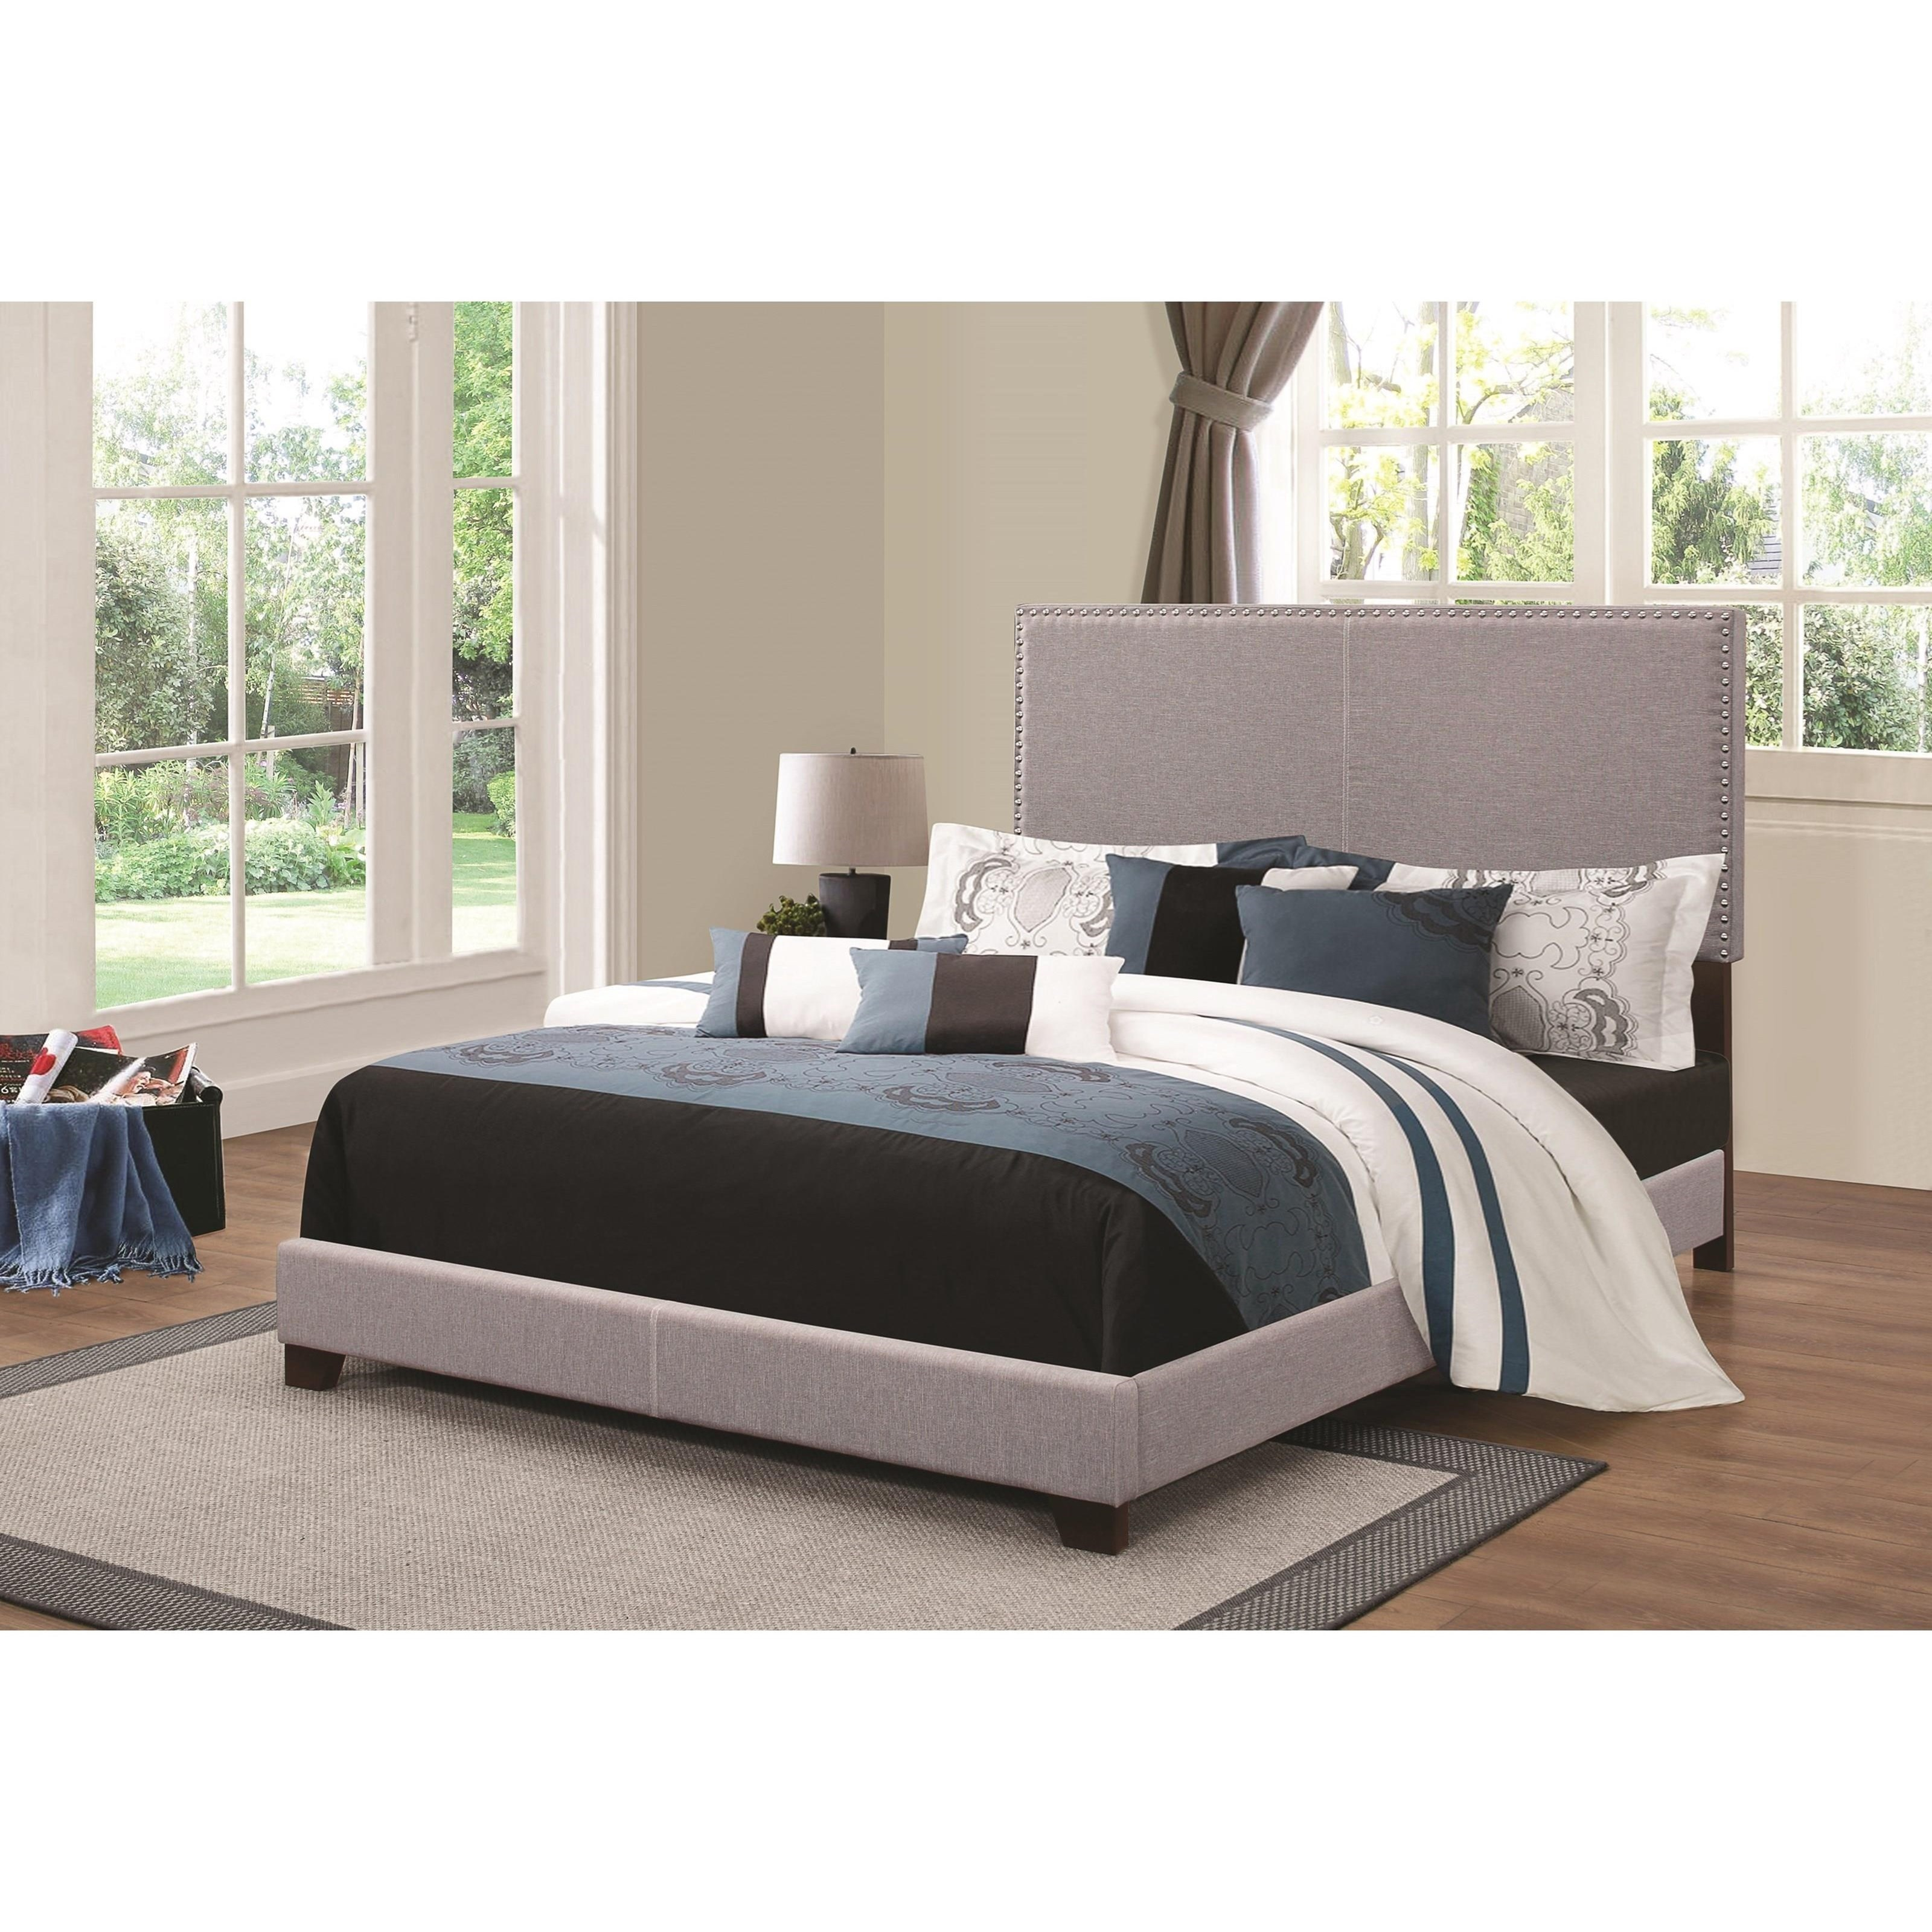 Upholstered Beds Full Bed by Coaster at Lapeer Furniture & Mattress Center